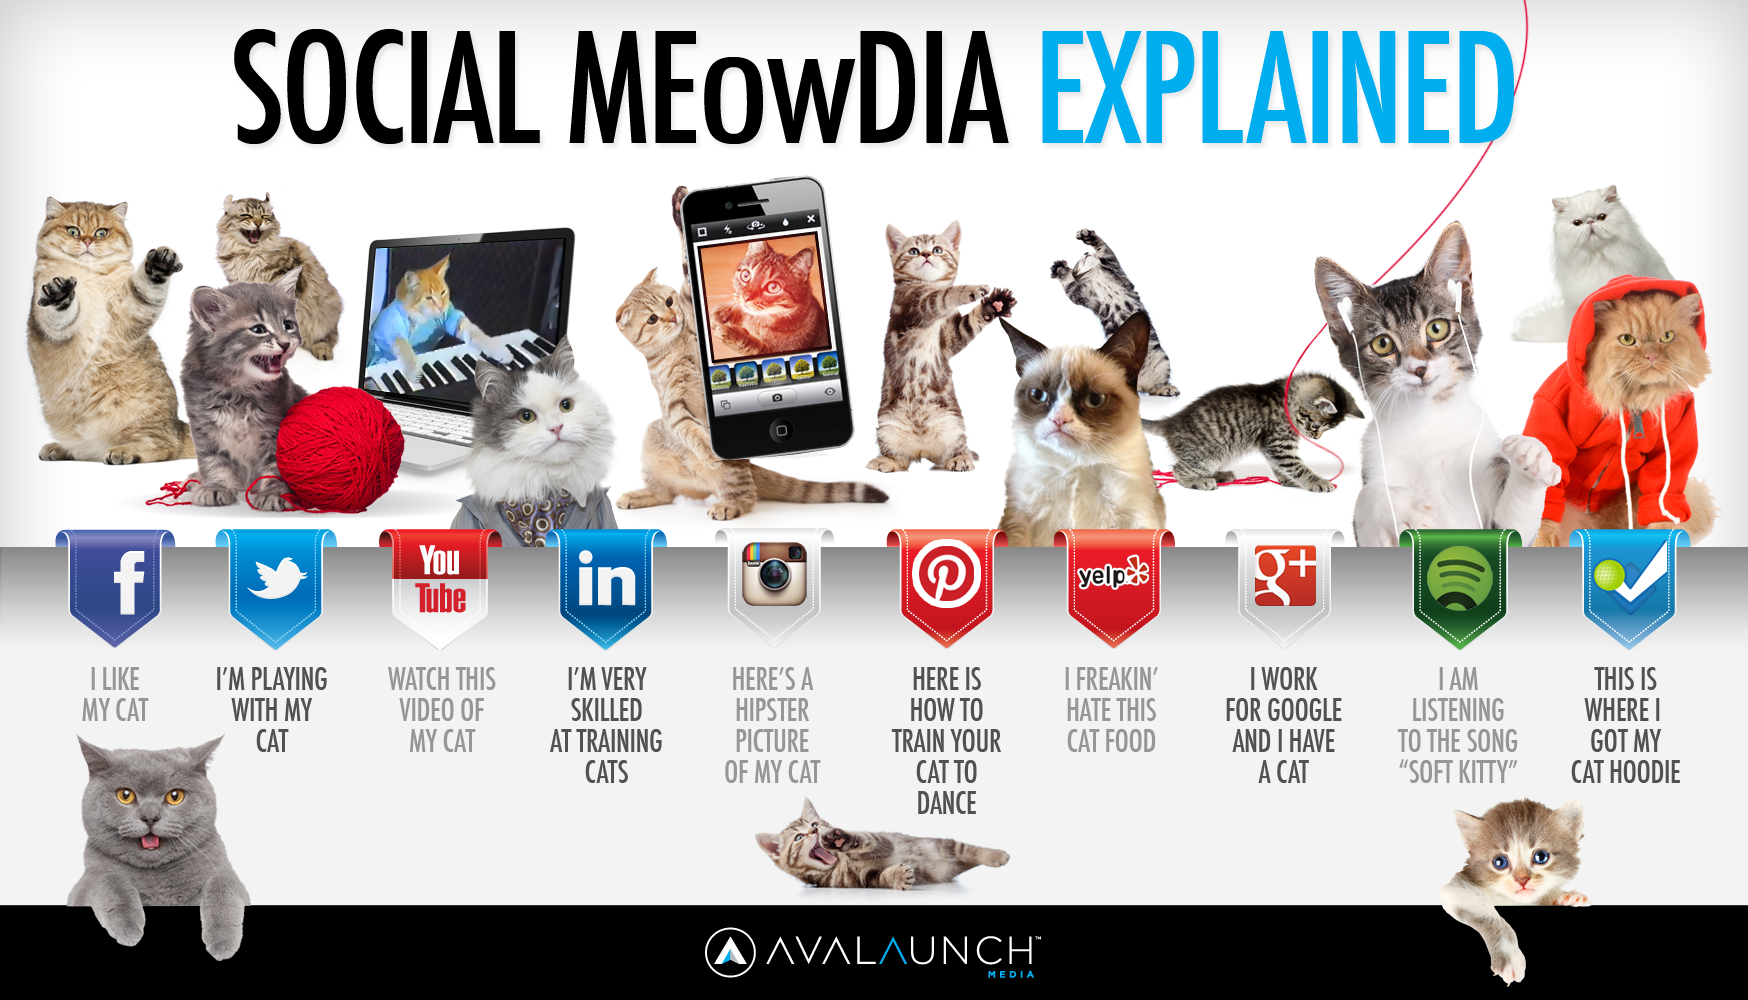 Explaining Social Networks with cats.